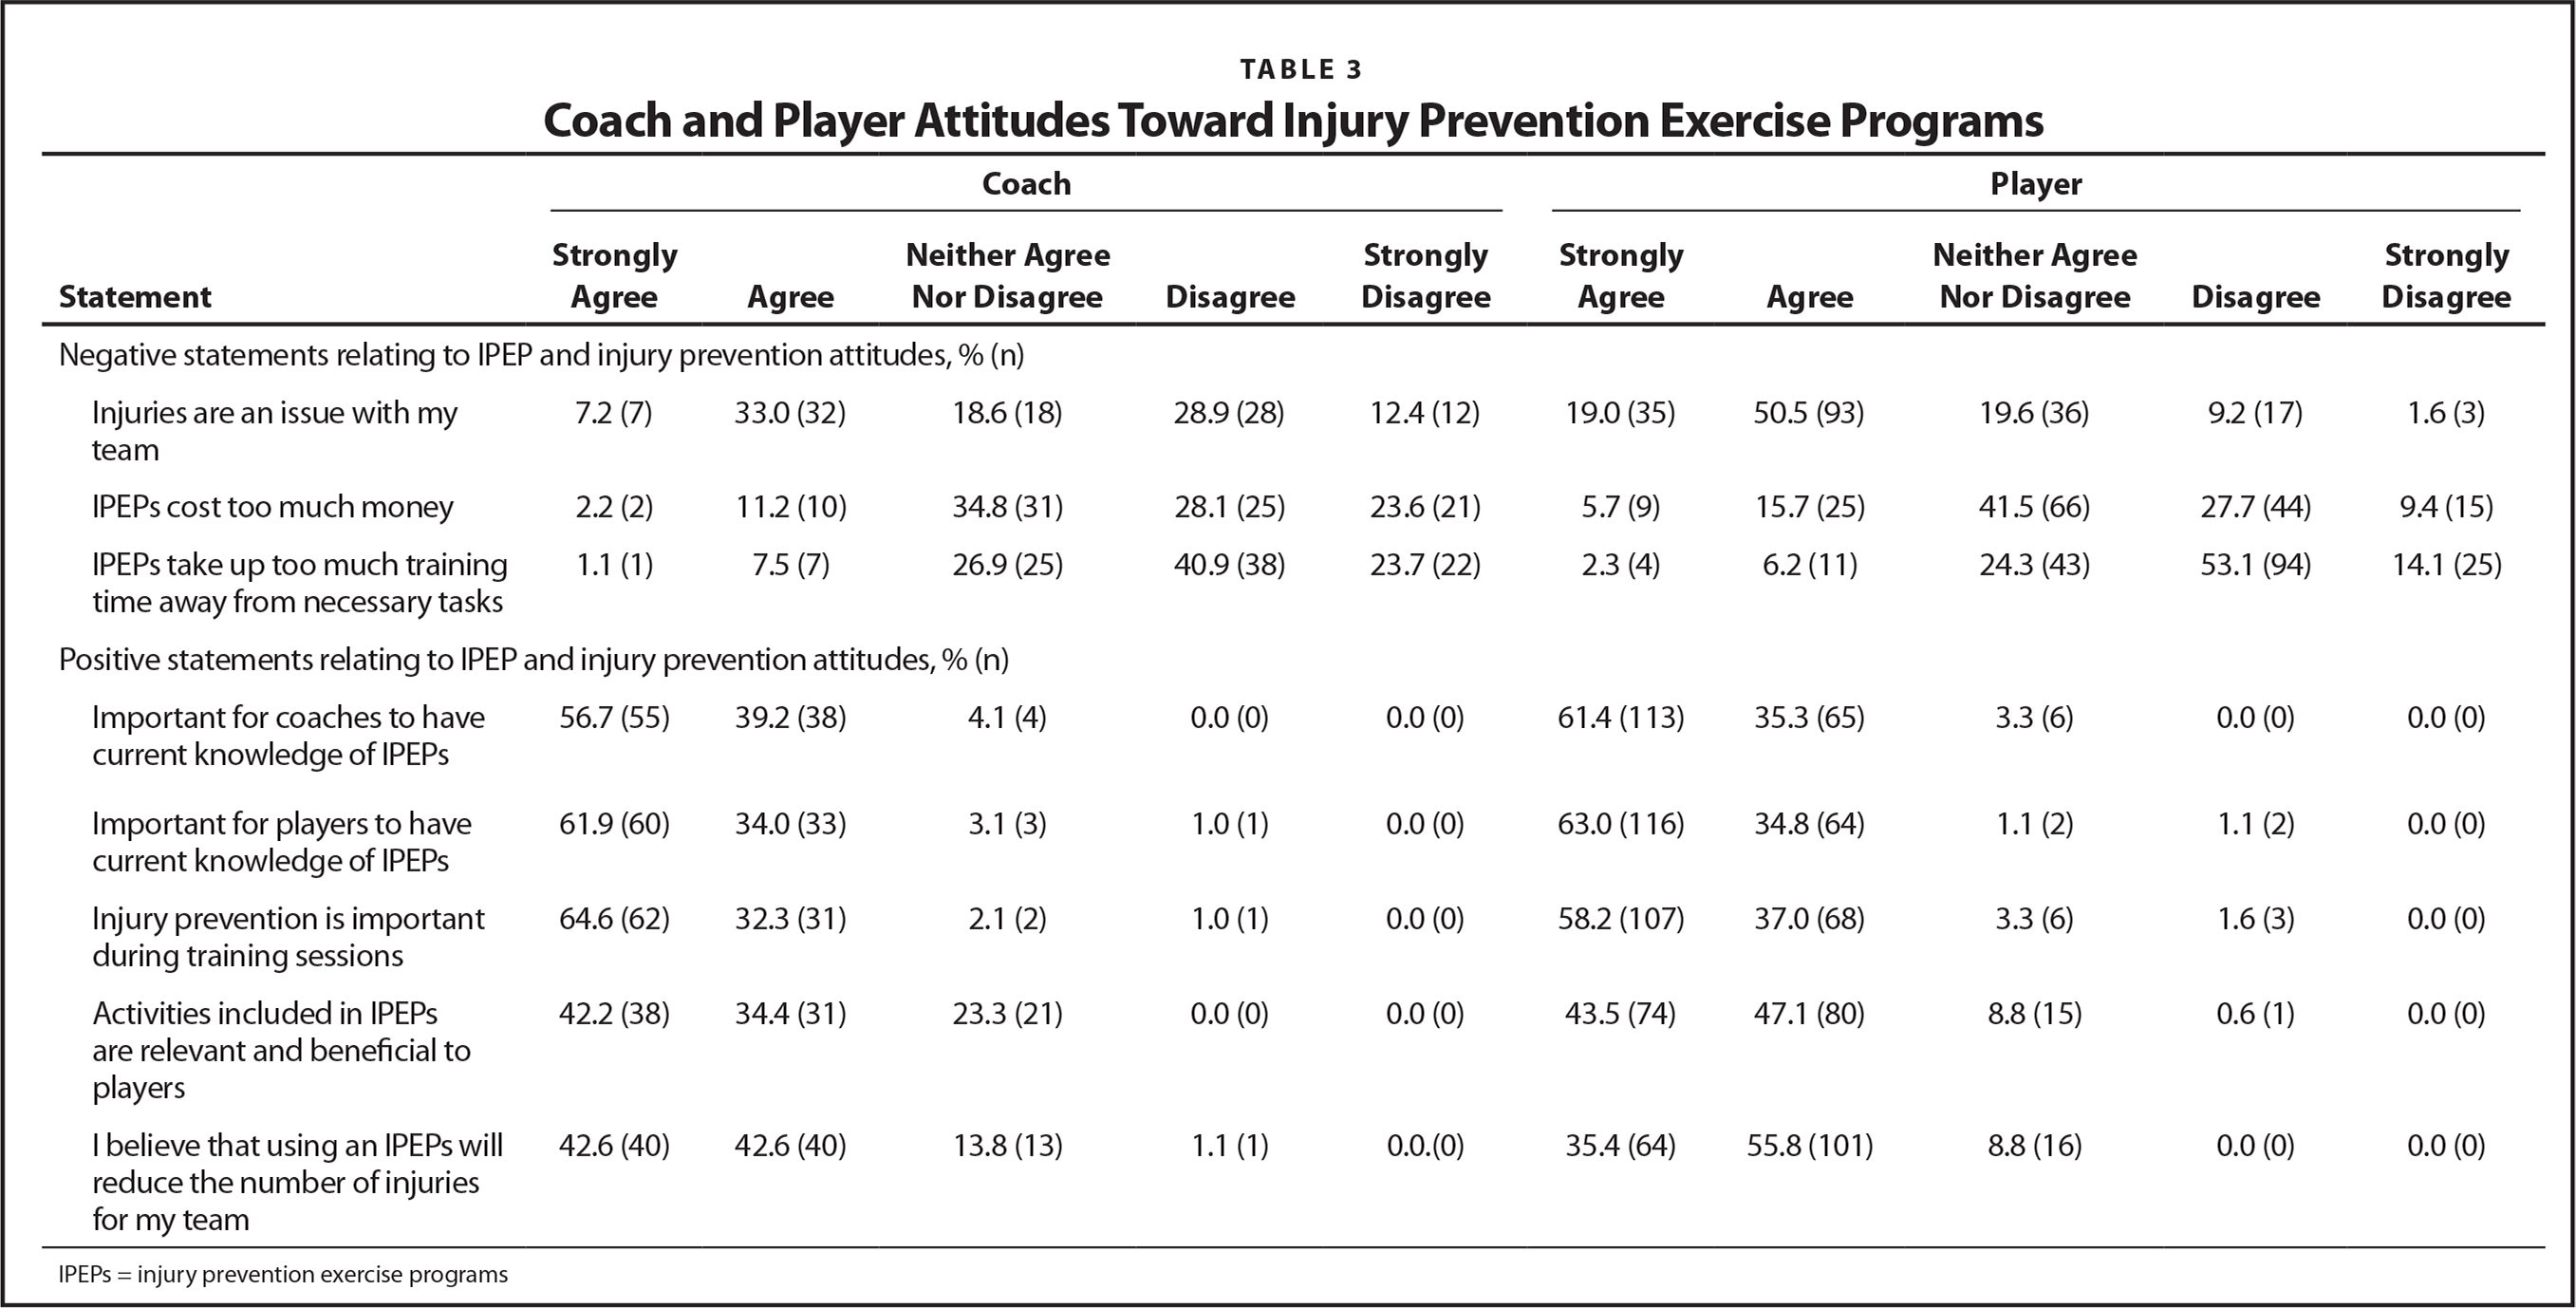 Coach and Player Attitudes Toward Injury Prevention Exercise Programs